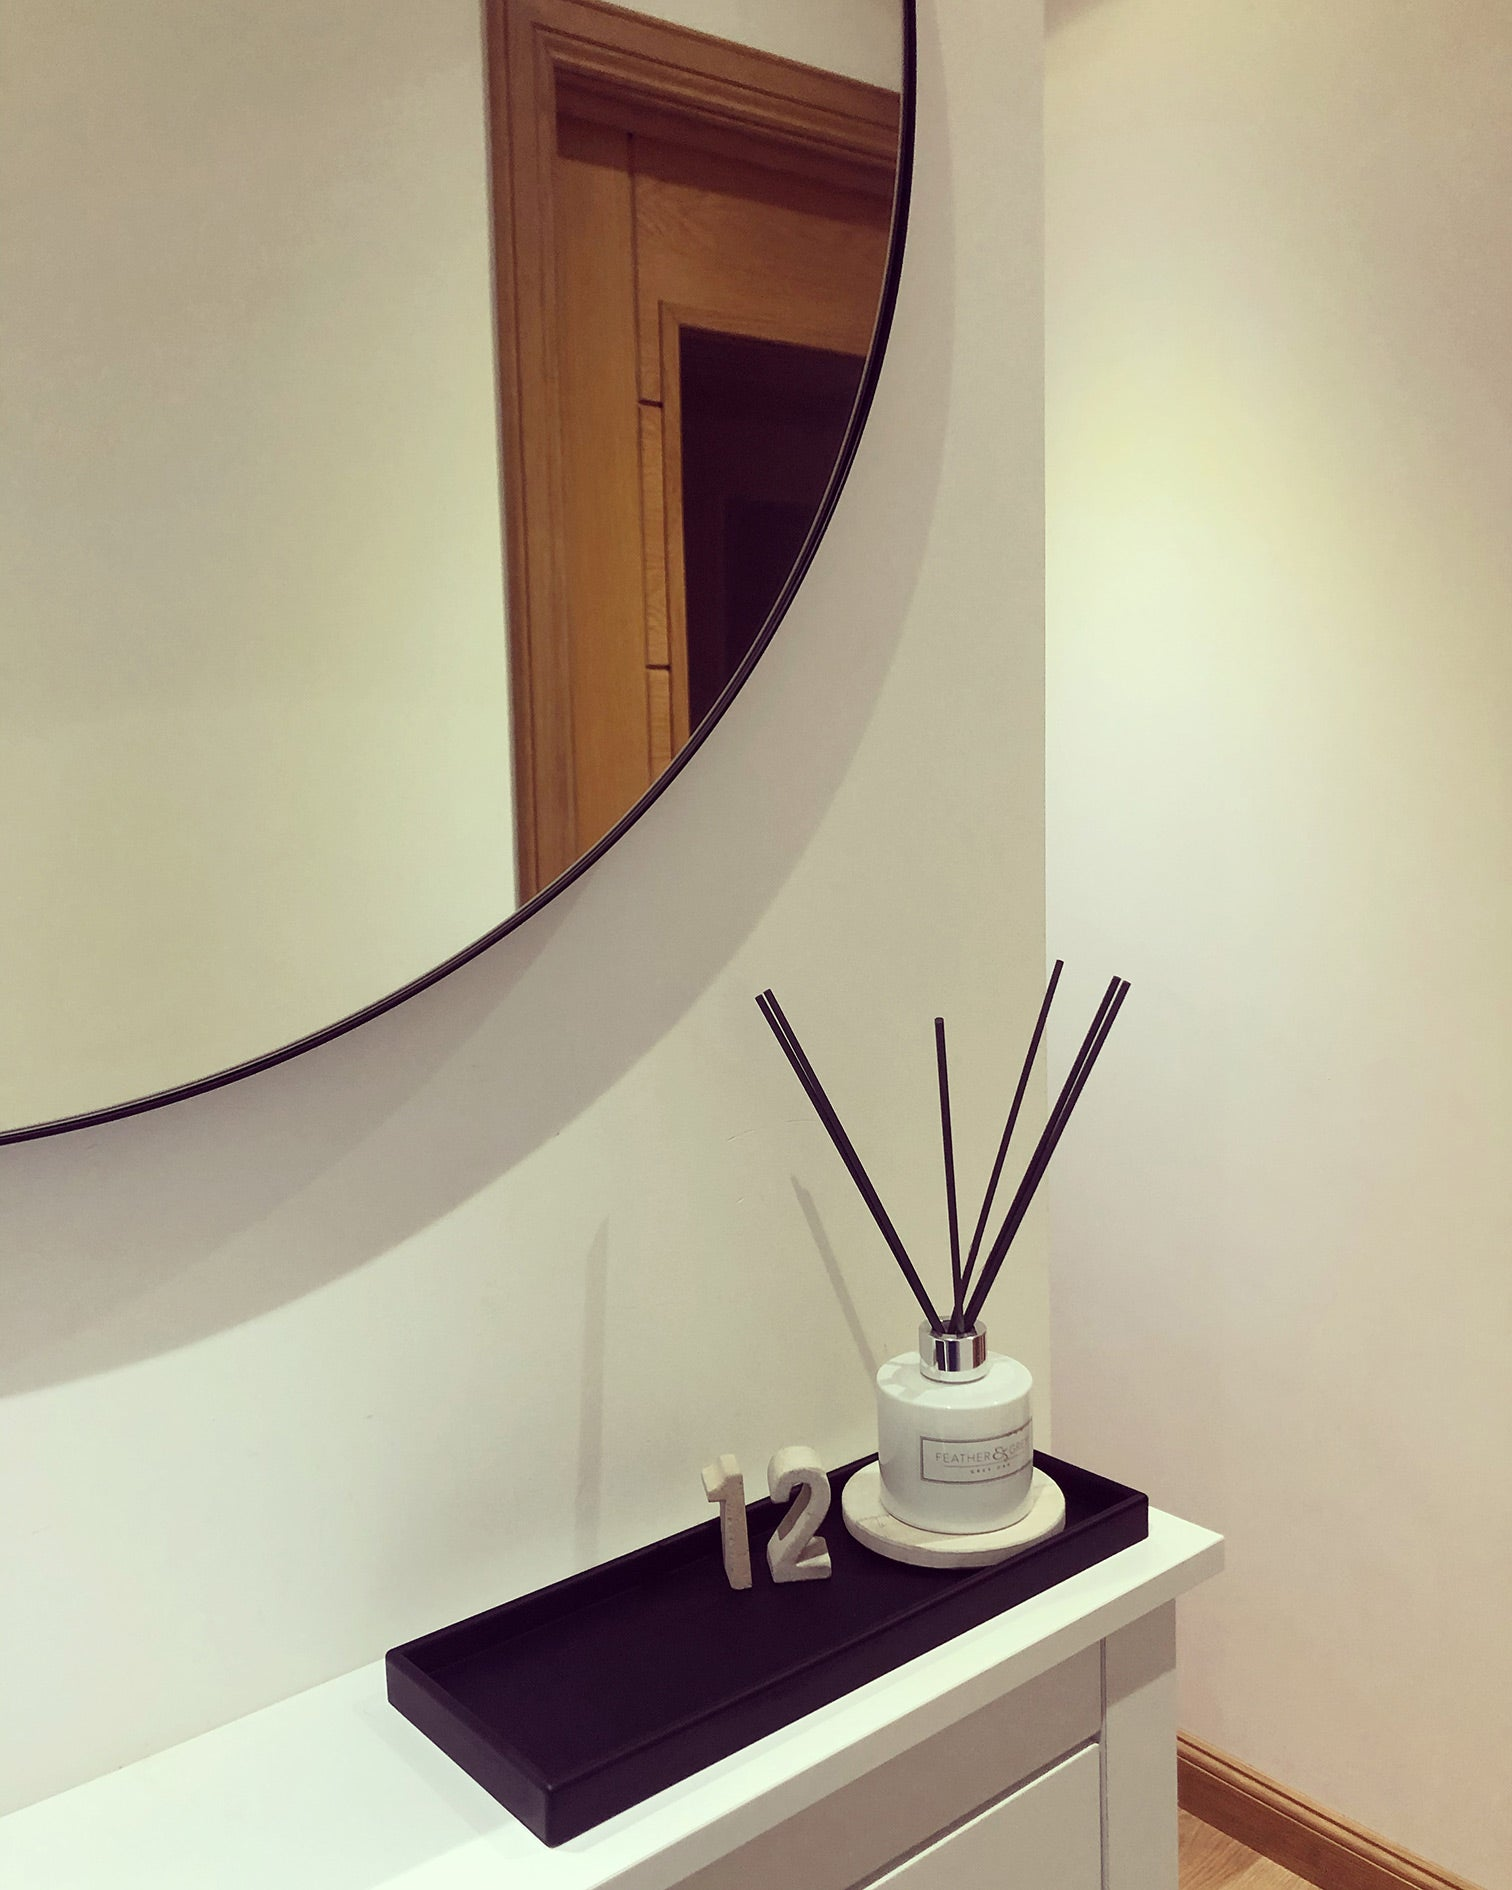 Hallway with large round mirror. Black tray with concrete number 12 and a reed diffuser